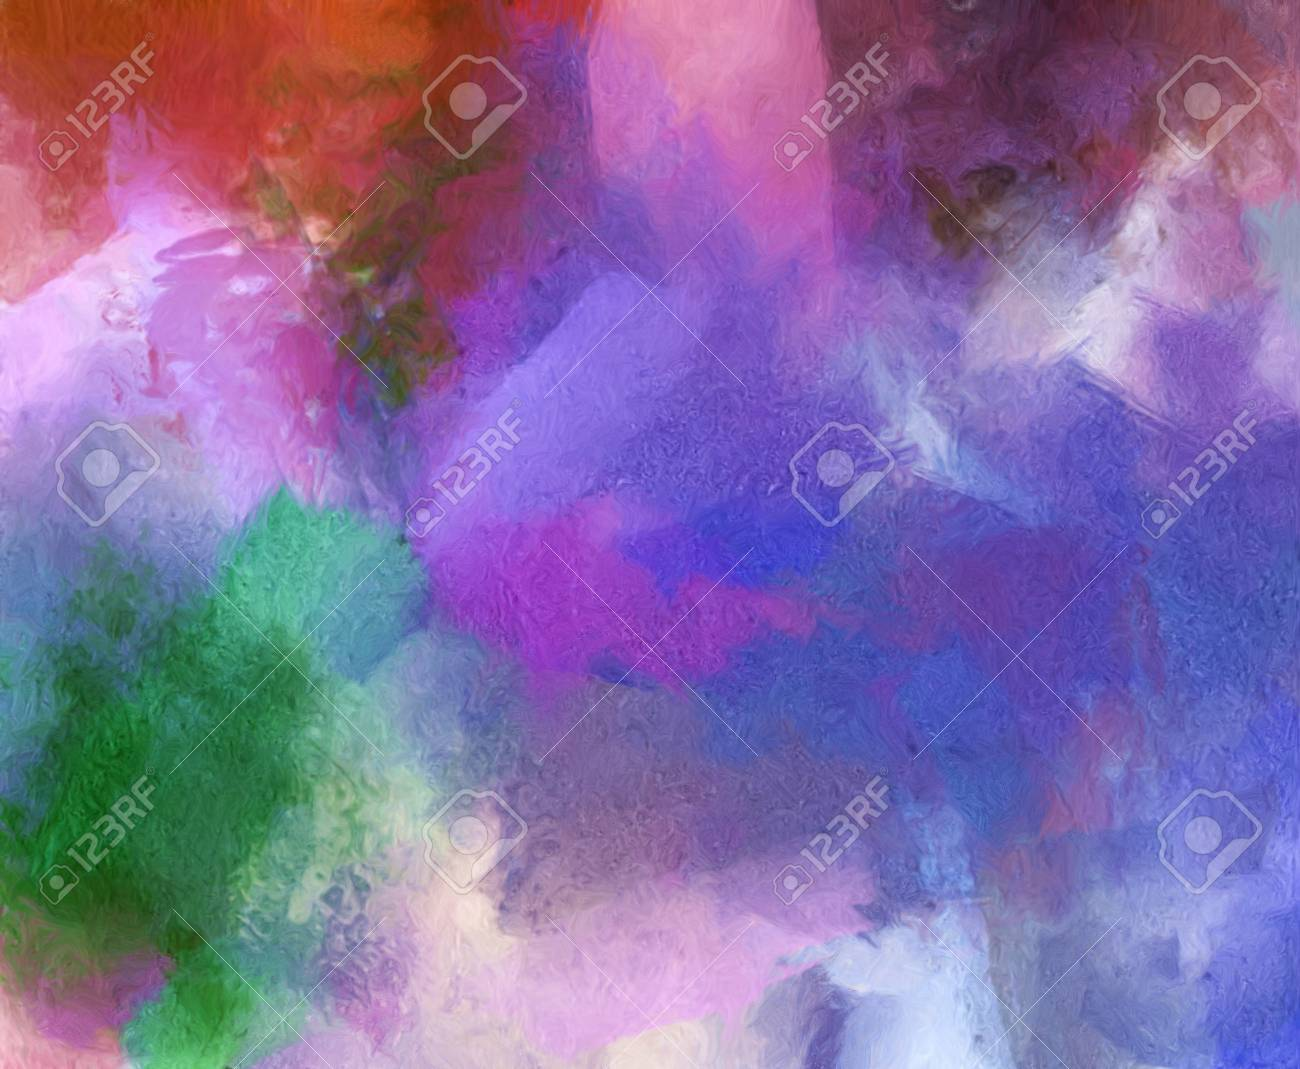 Abstraction oil paintings for sale stock creative design background with textured brush strokes